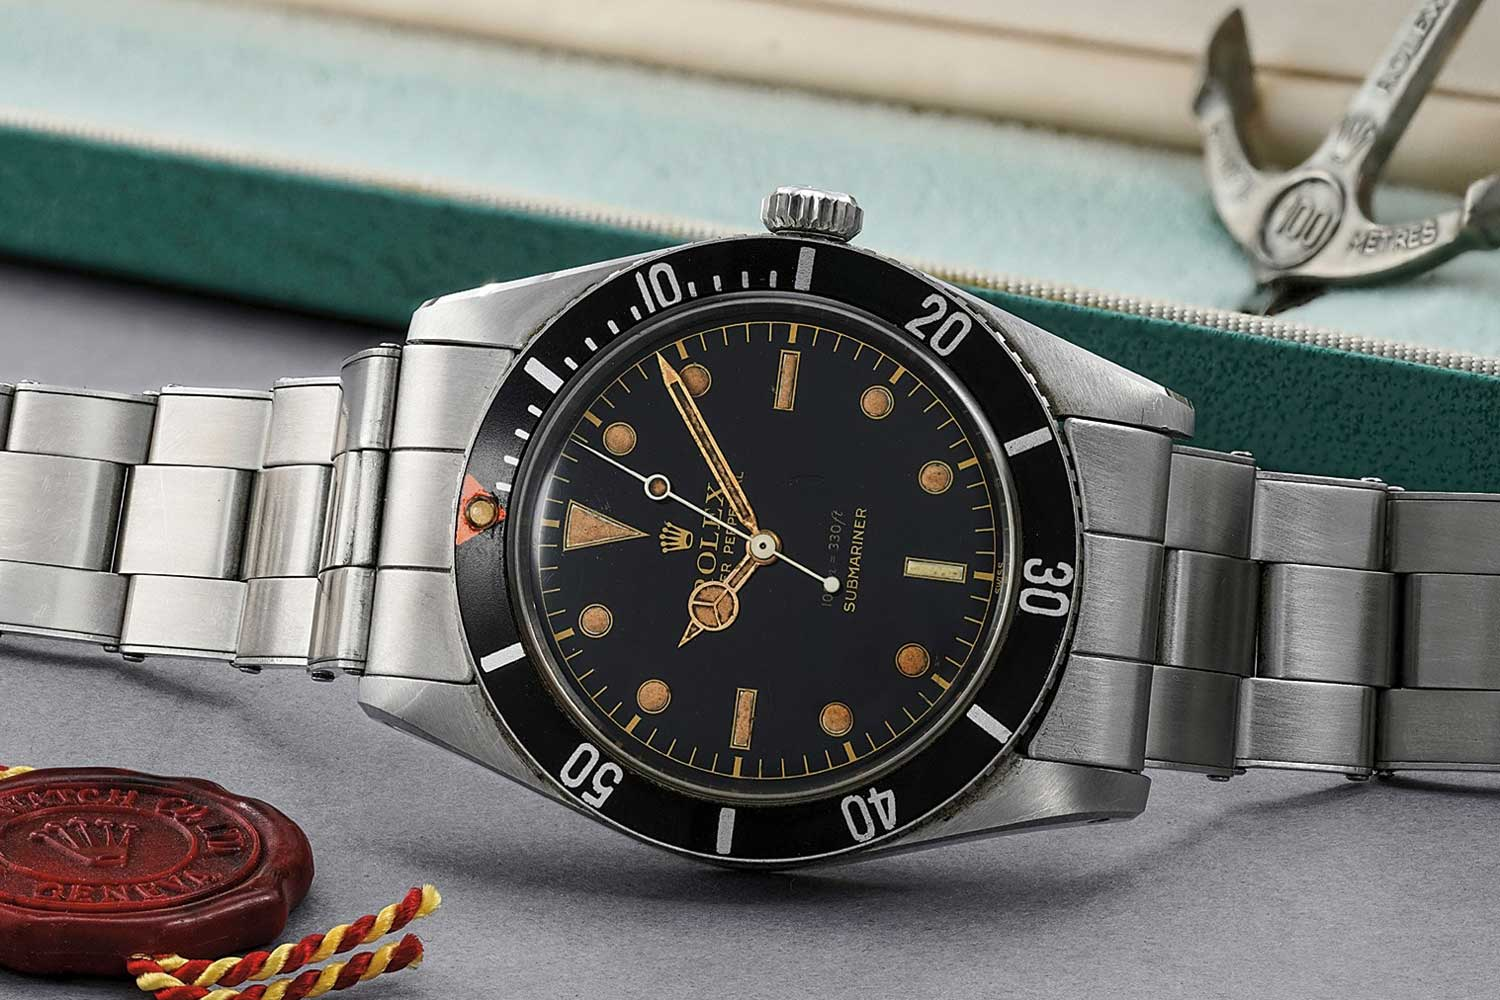 Lot 213: Rolex Submariner reference 5508 sold for CHF 500,000